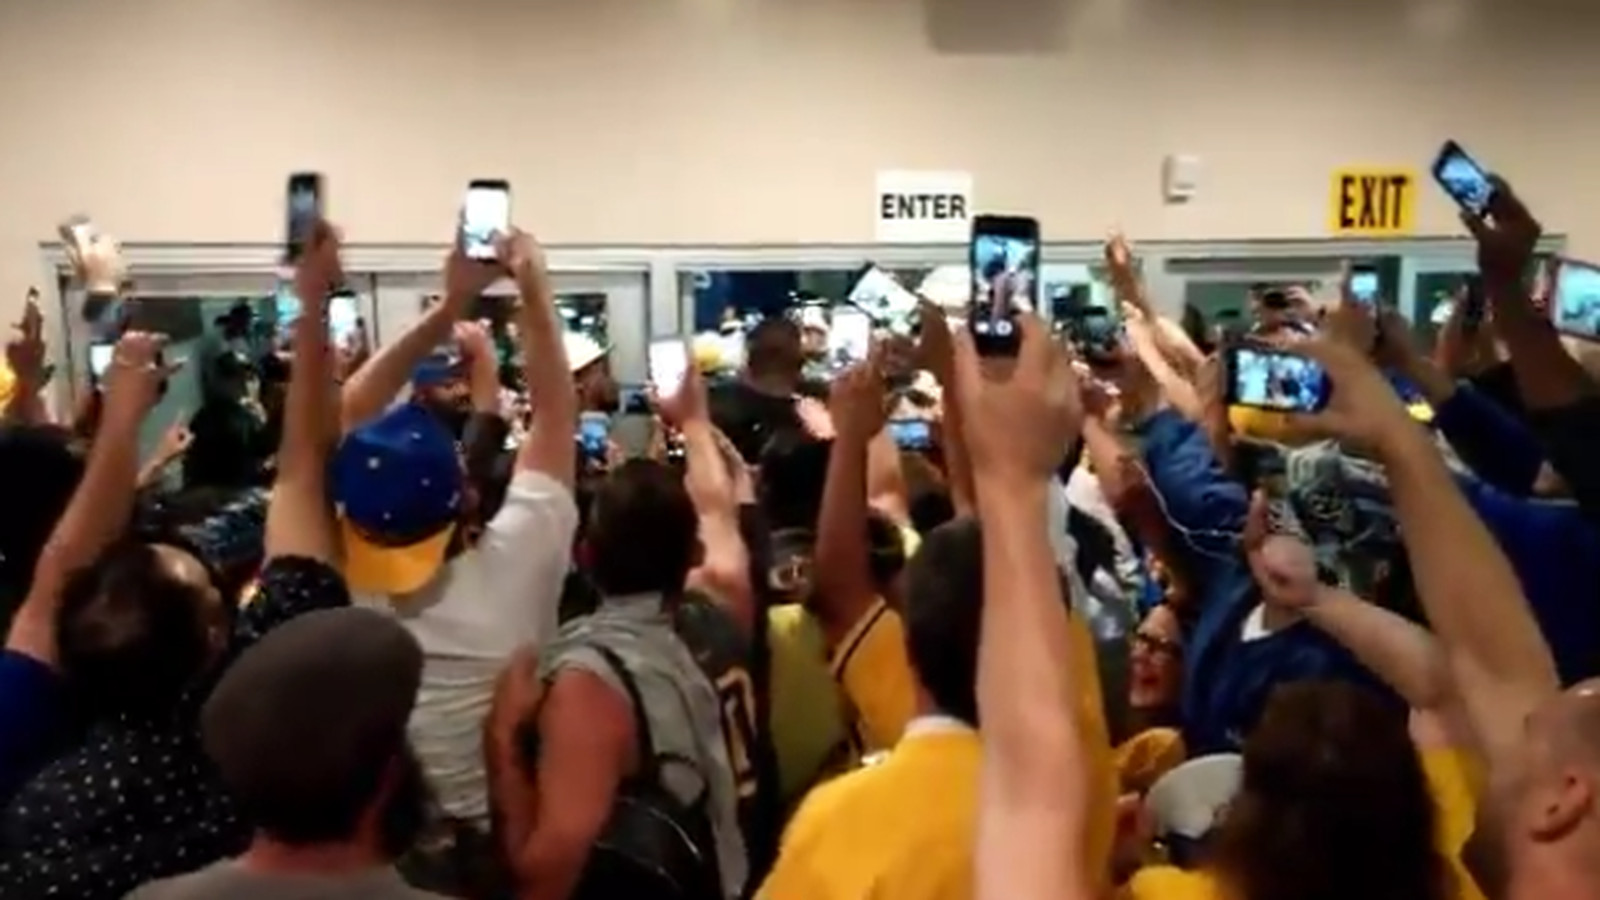 Athletics Fans Serenade Draymond Green With Free Draymond